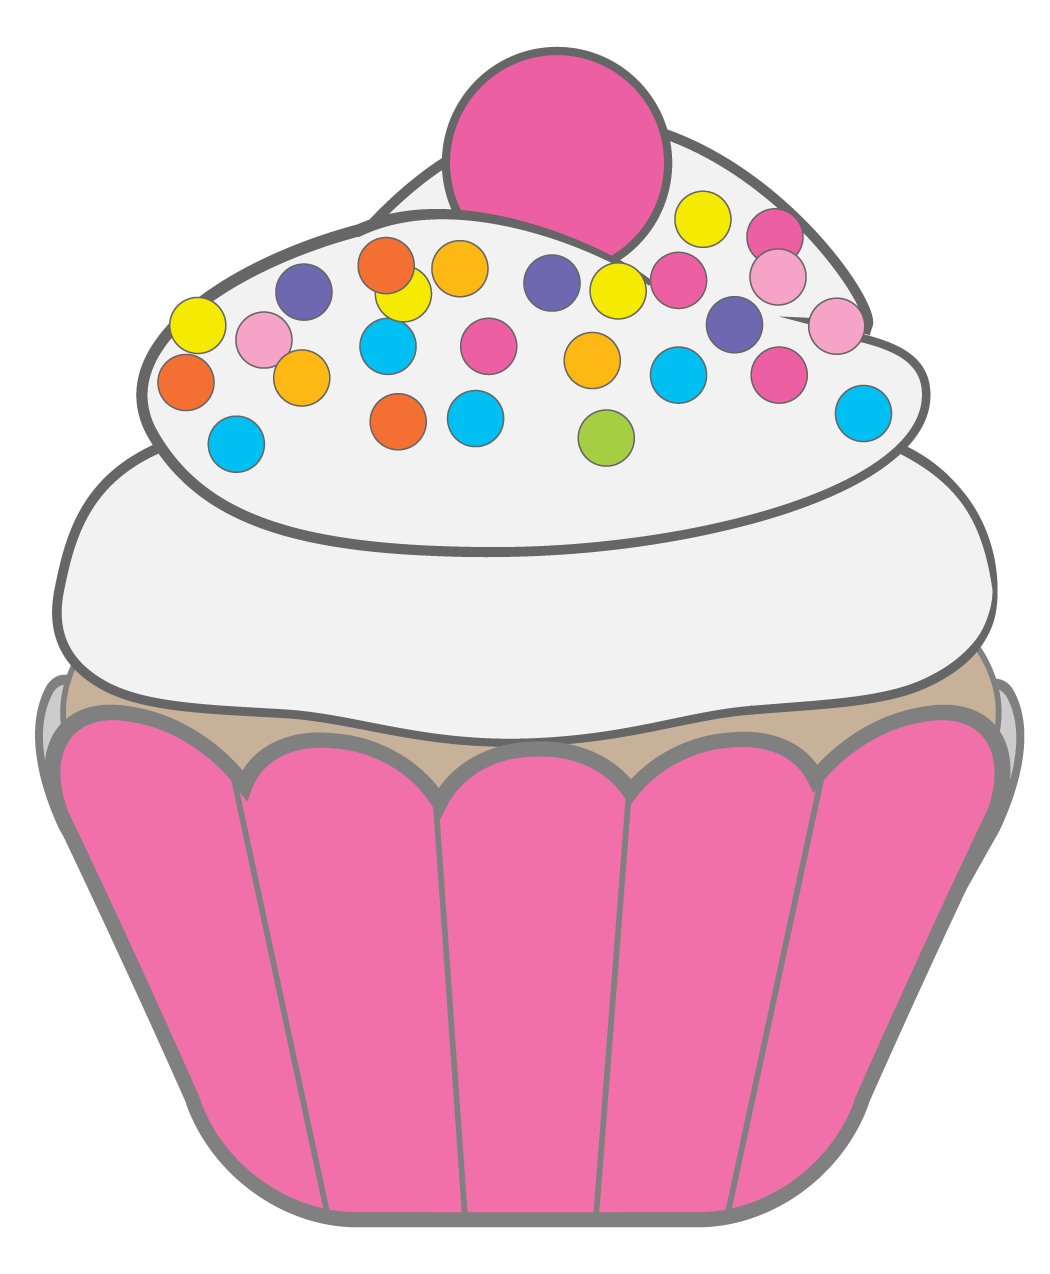 Panda clipart cupcake Clipart Muffin Images Free muffin%20clipart